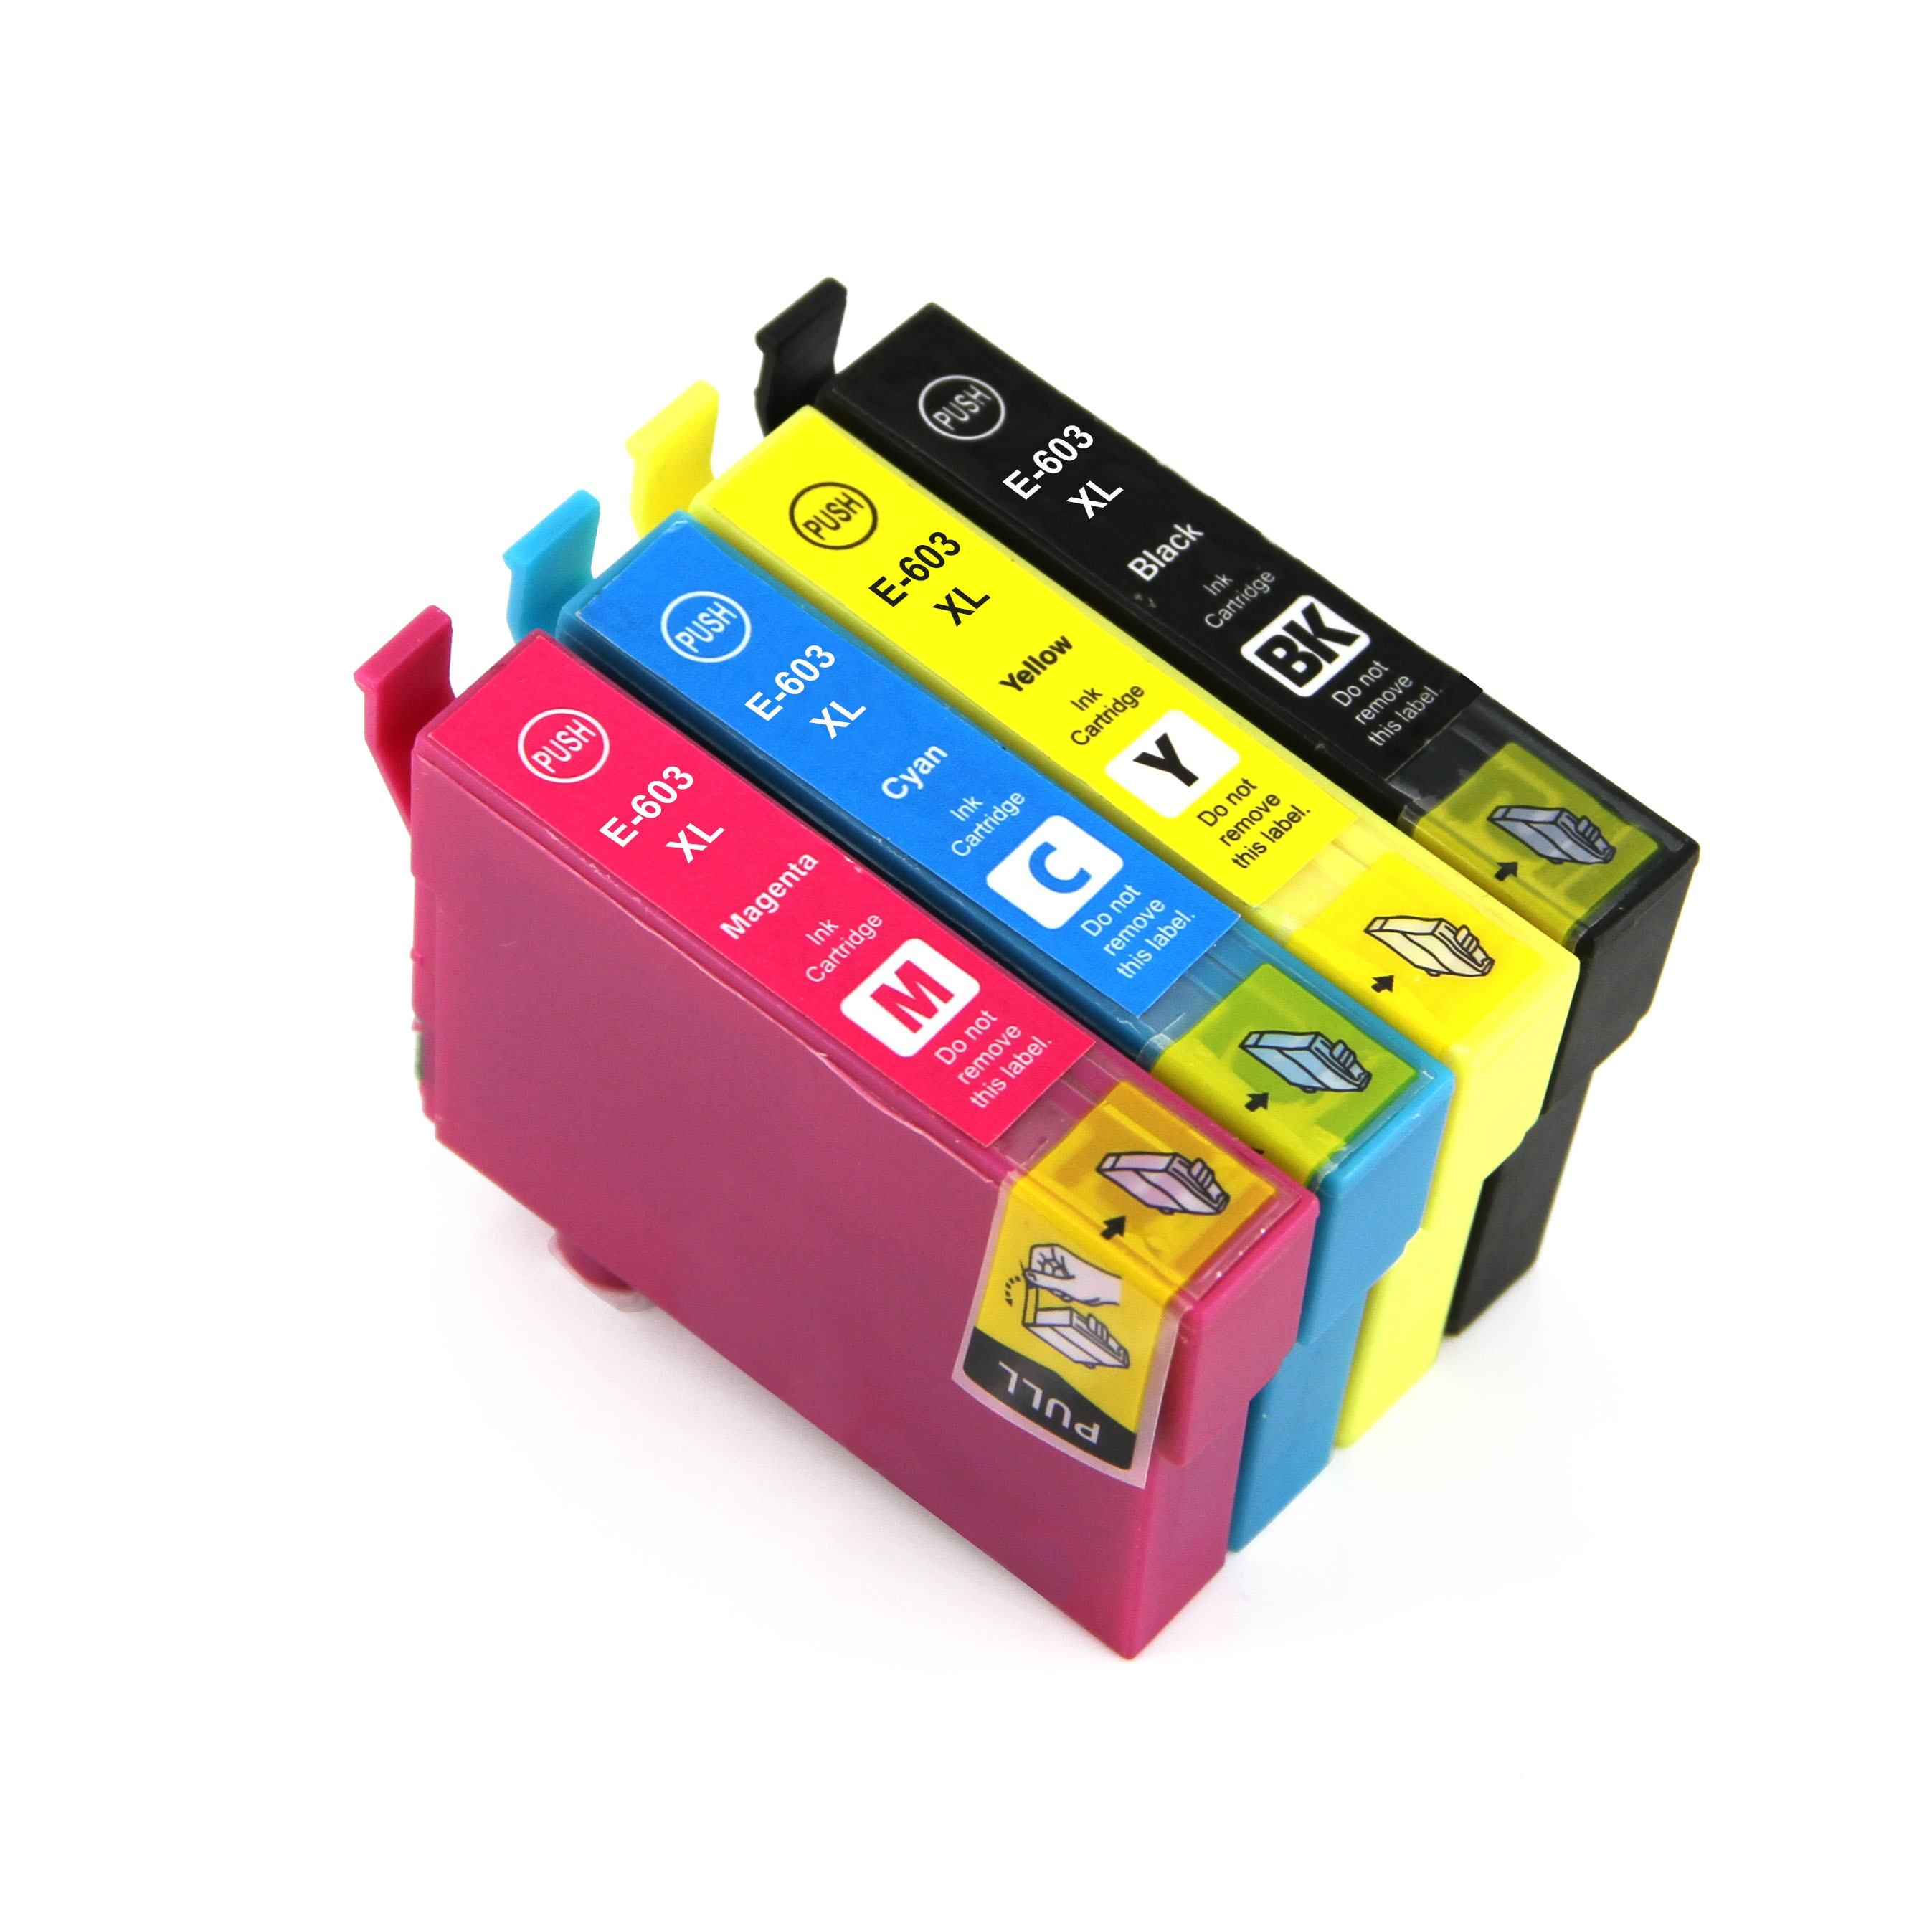 603XL compatible black ink tank ink cartridge with chip inkjet printers use in XP-2100 XP-2105 XP-3100 XP-3105 XP-4100